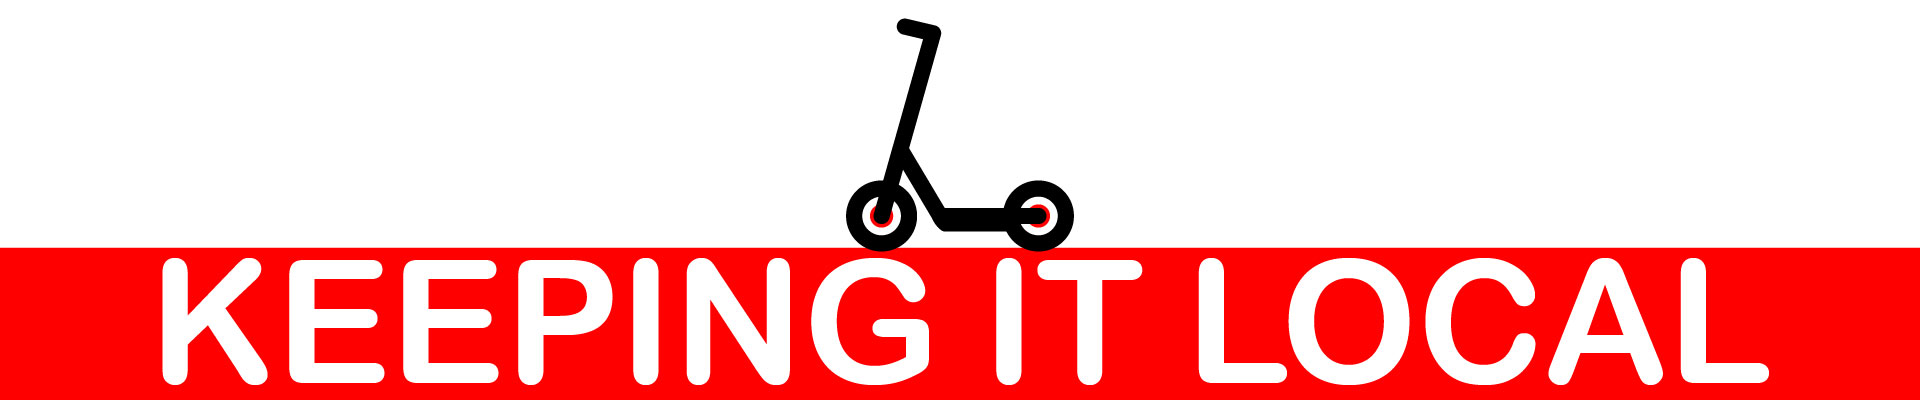 Electric Scooters UK Local